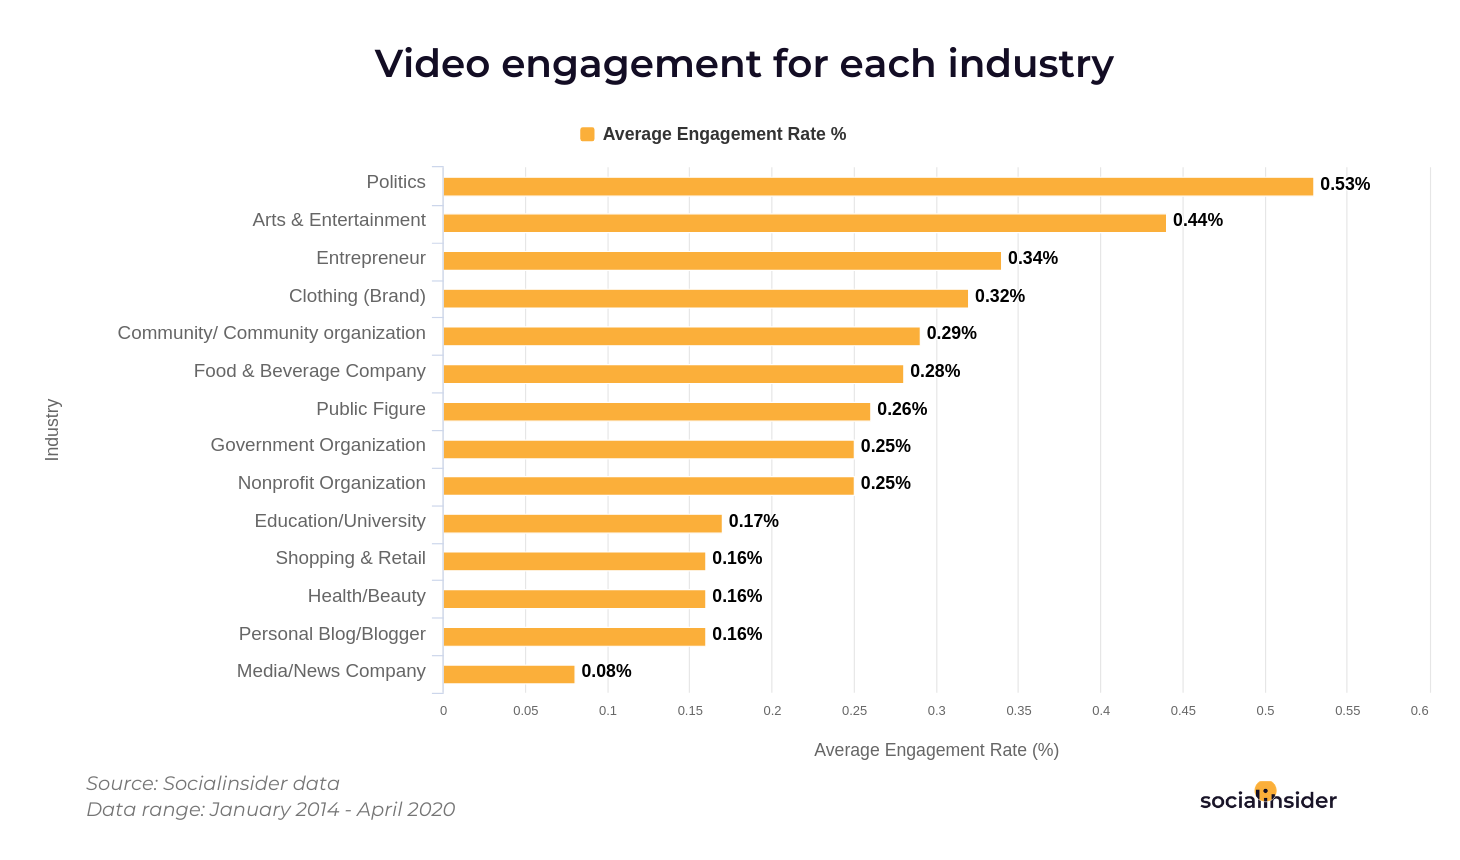 Engagement rates of Facebook videos for each industry